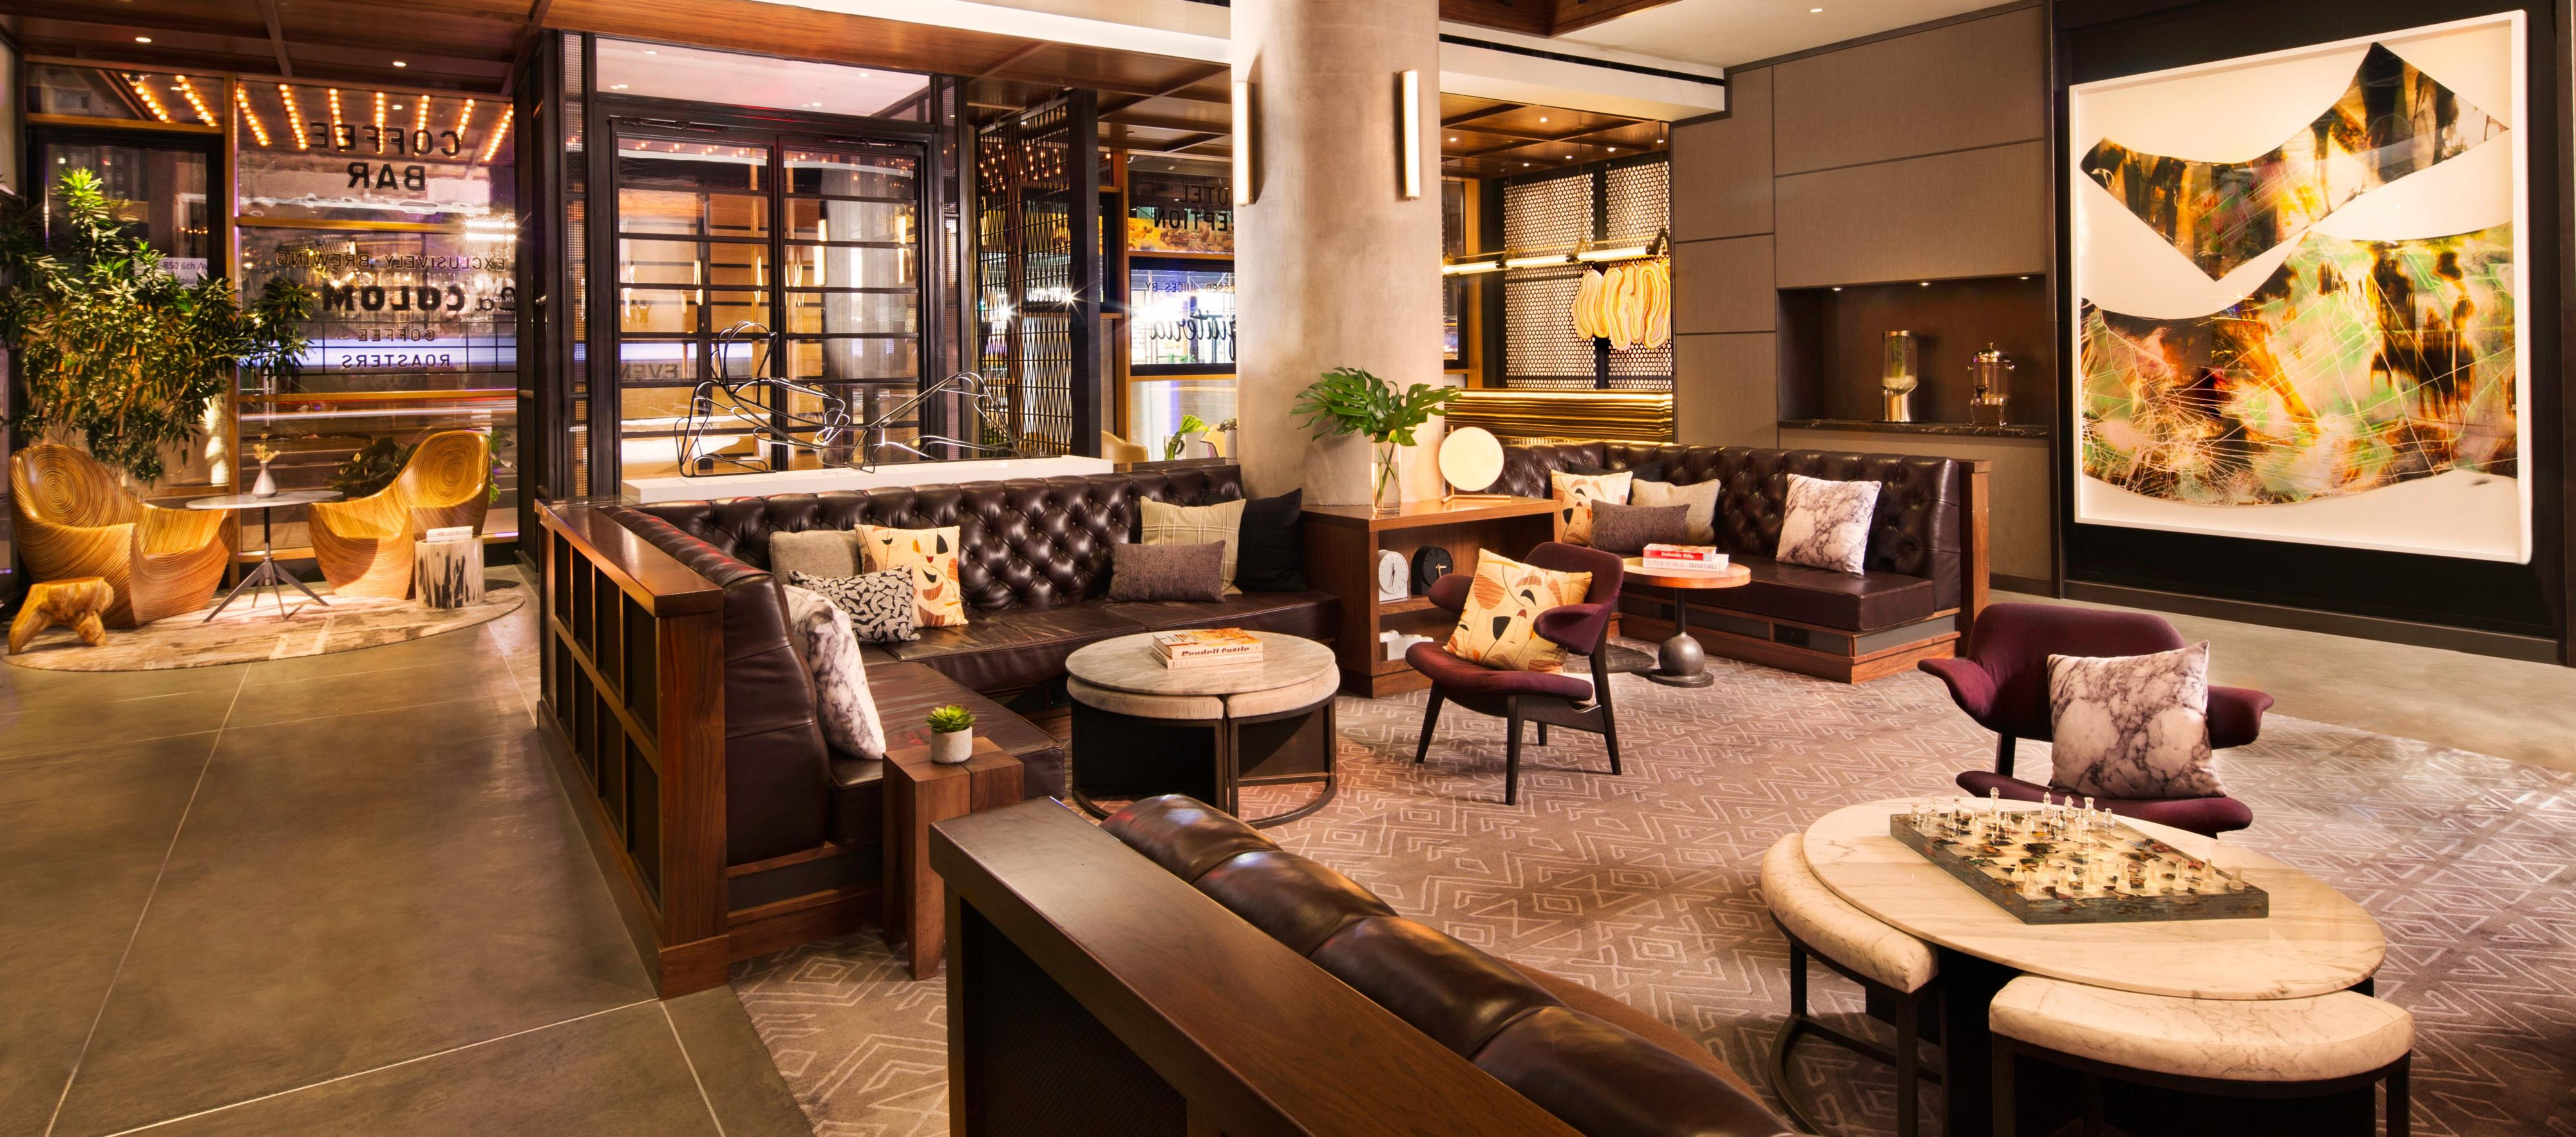 Kimpton Hotel Eventi in New York City | Kimpton Hotels